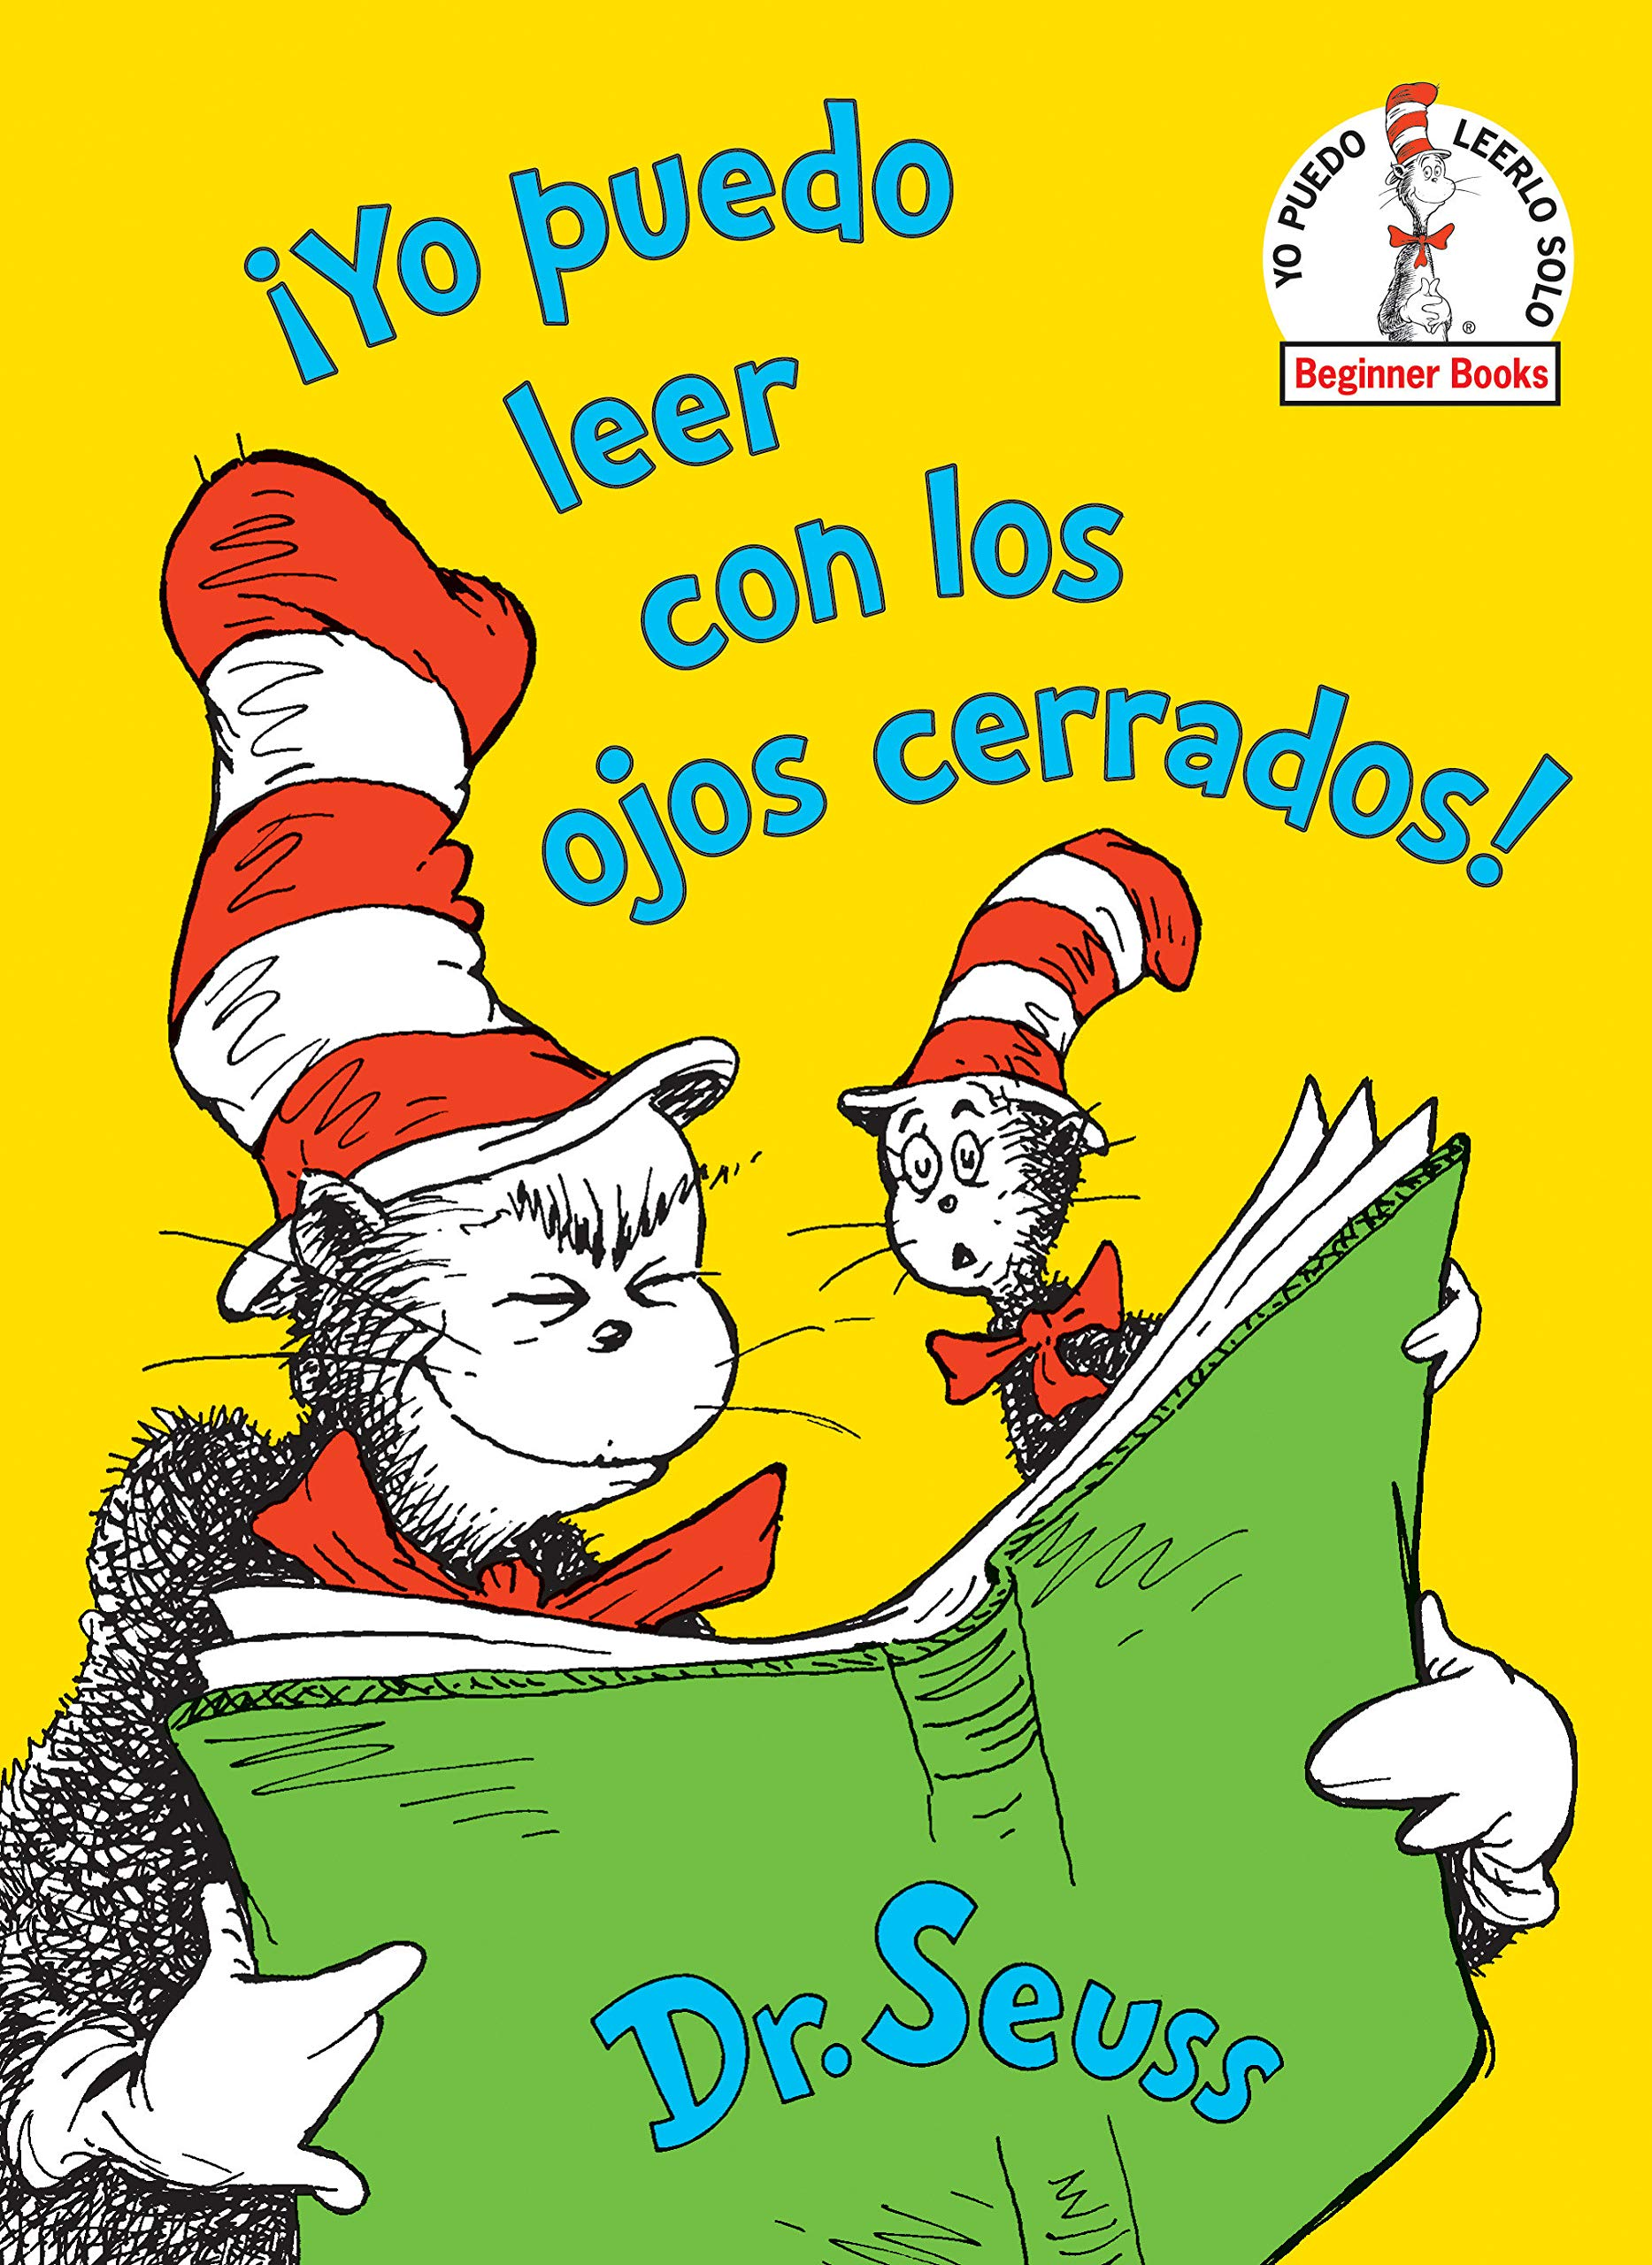 Amazon.com: ¡Yo puedo leer con los ojos cerrados! (I Can Read With My Eyes Shut! Spanish Edition) (Beginner Books(R)) (9781984831026): Dr. Seuss: Books